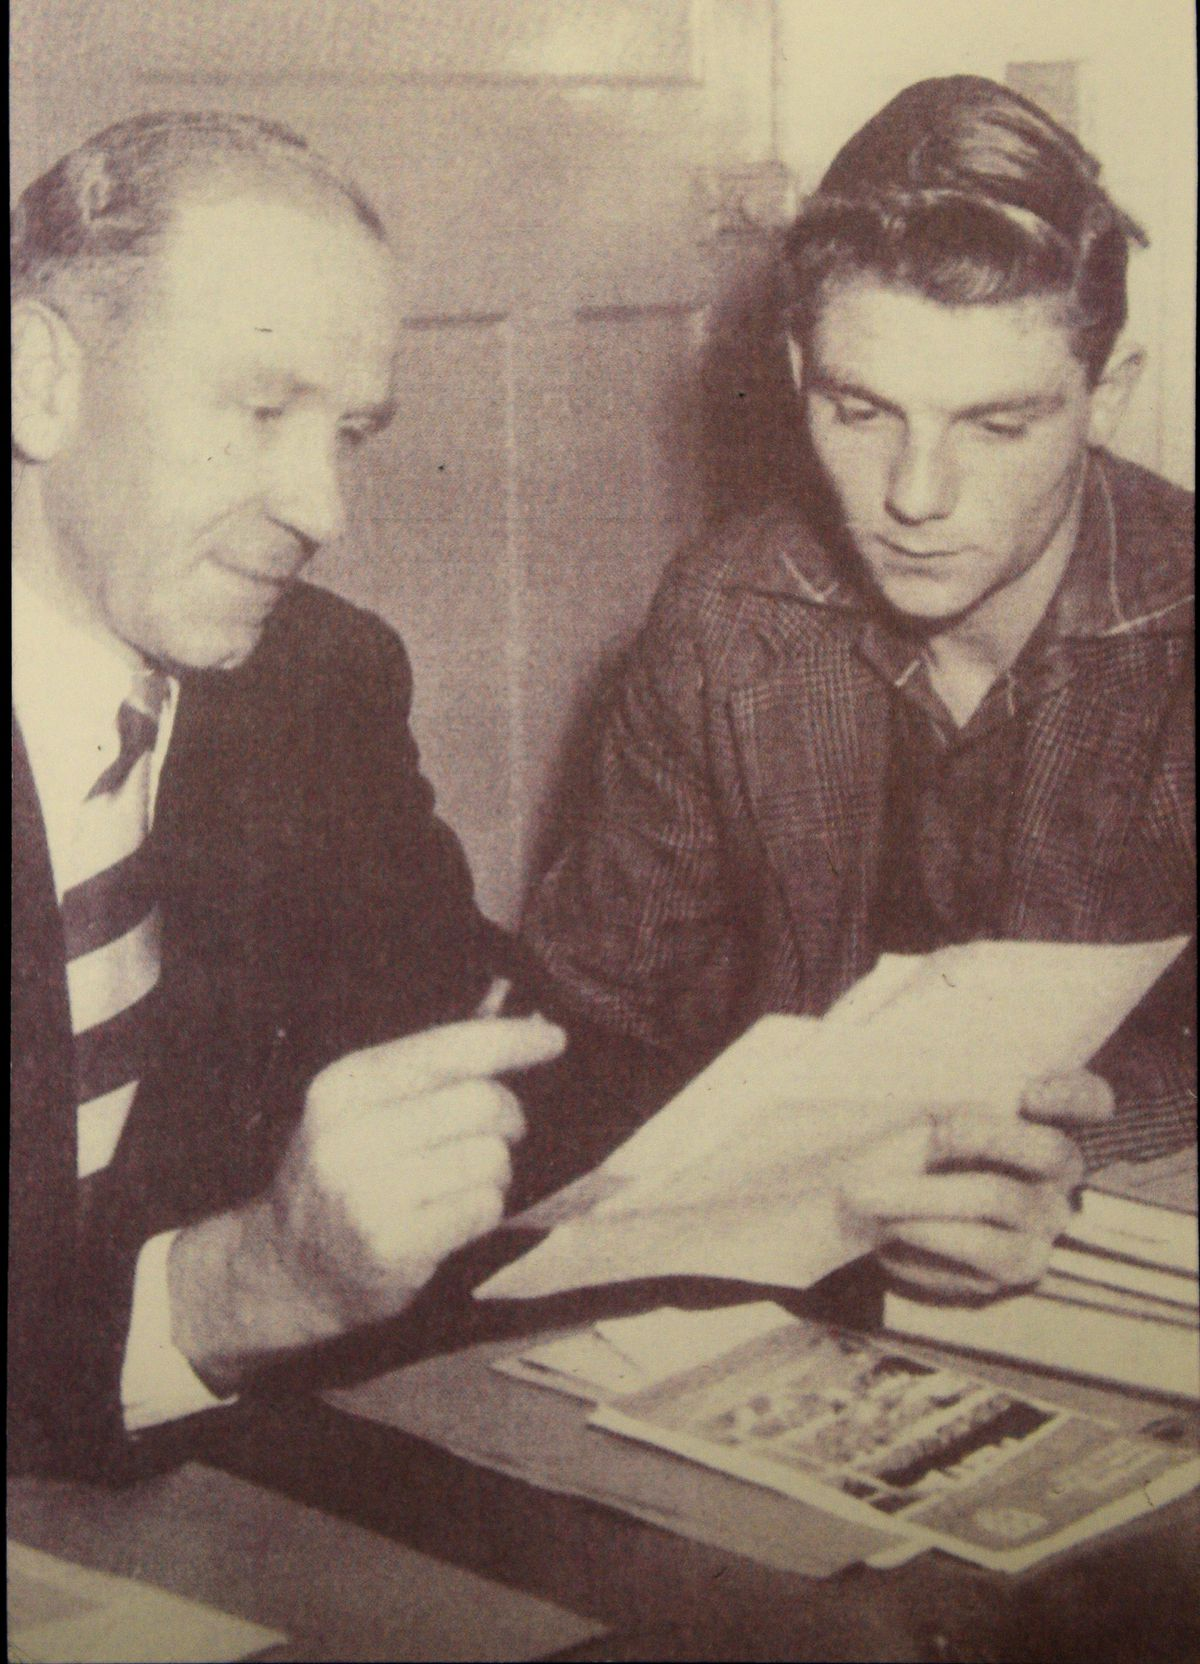 Duncan signing for Manchester United with Matt Busby